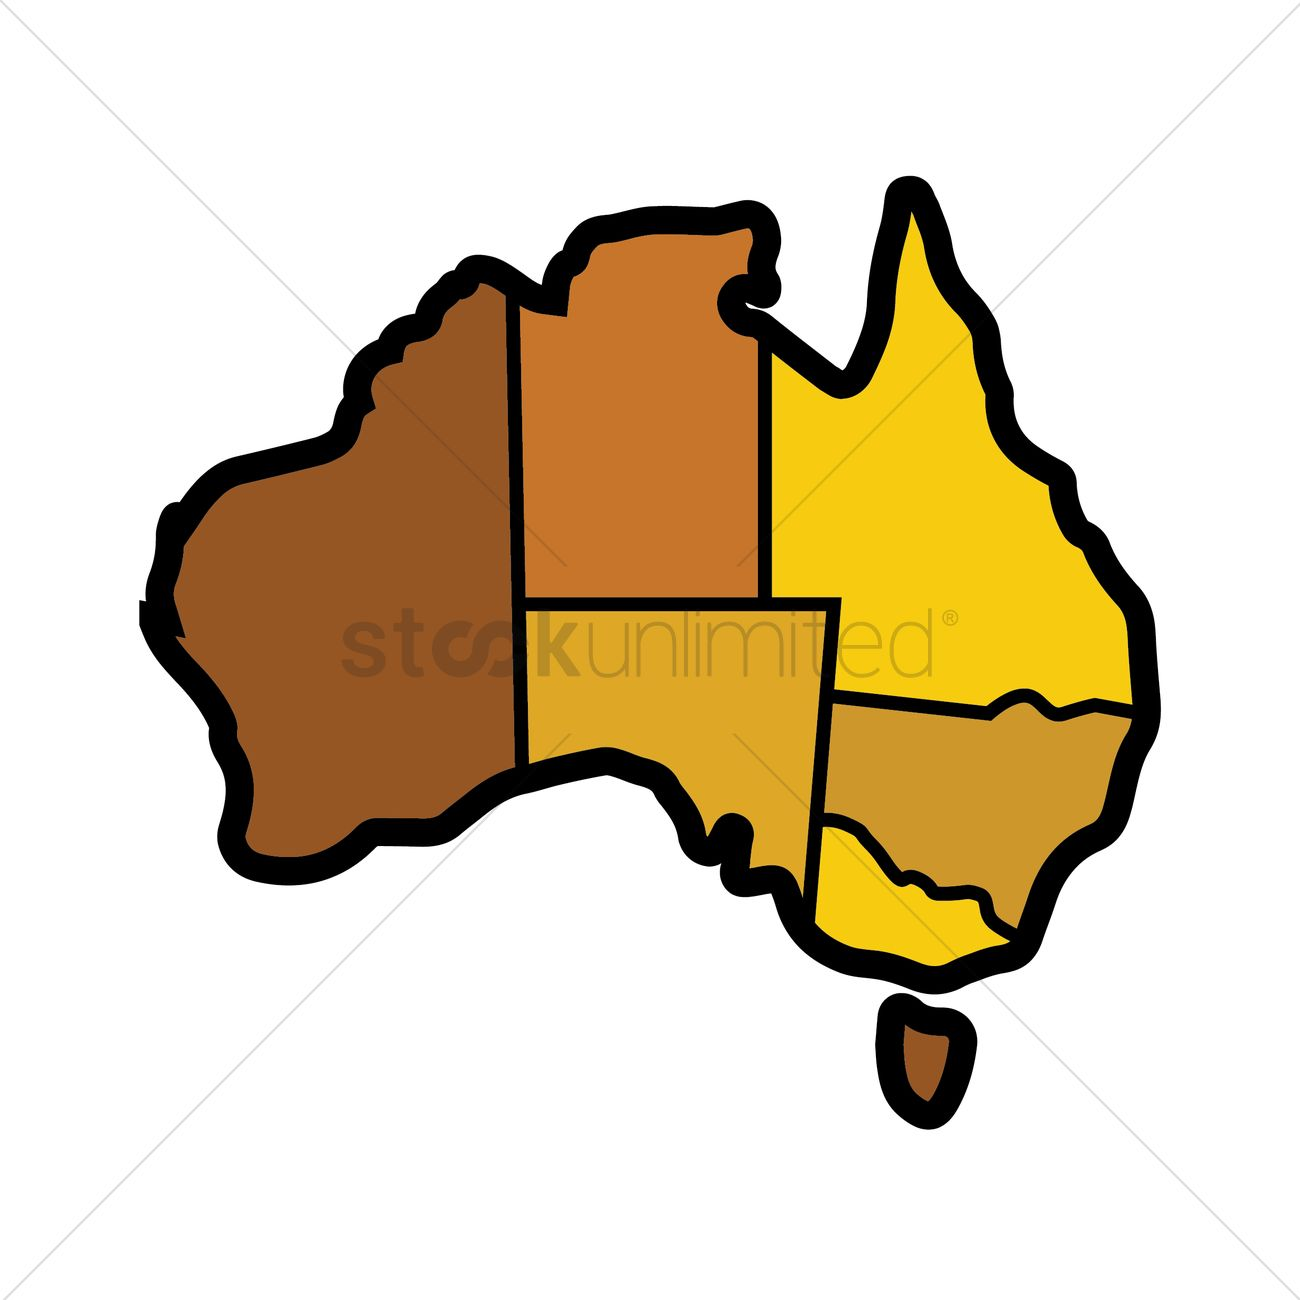 Australia Map Vector.Australia Map Vector Image 1952583 Stockunlimited